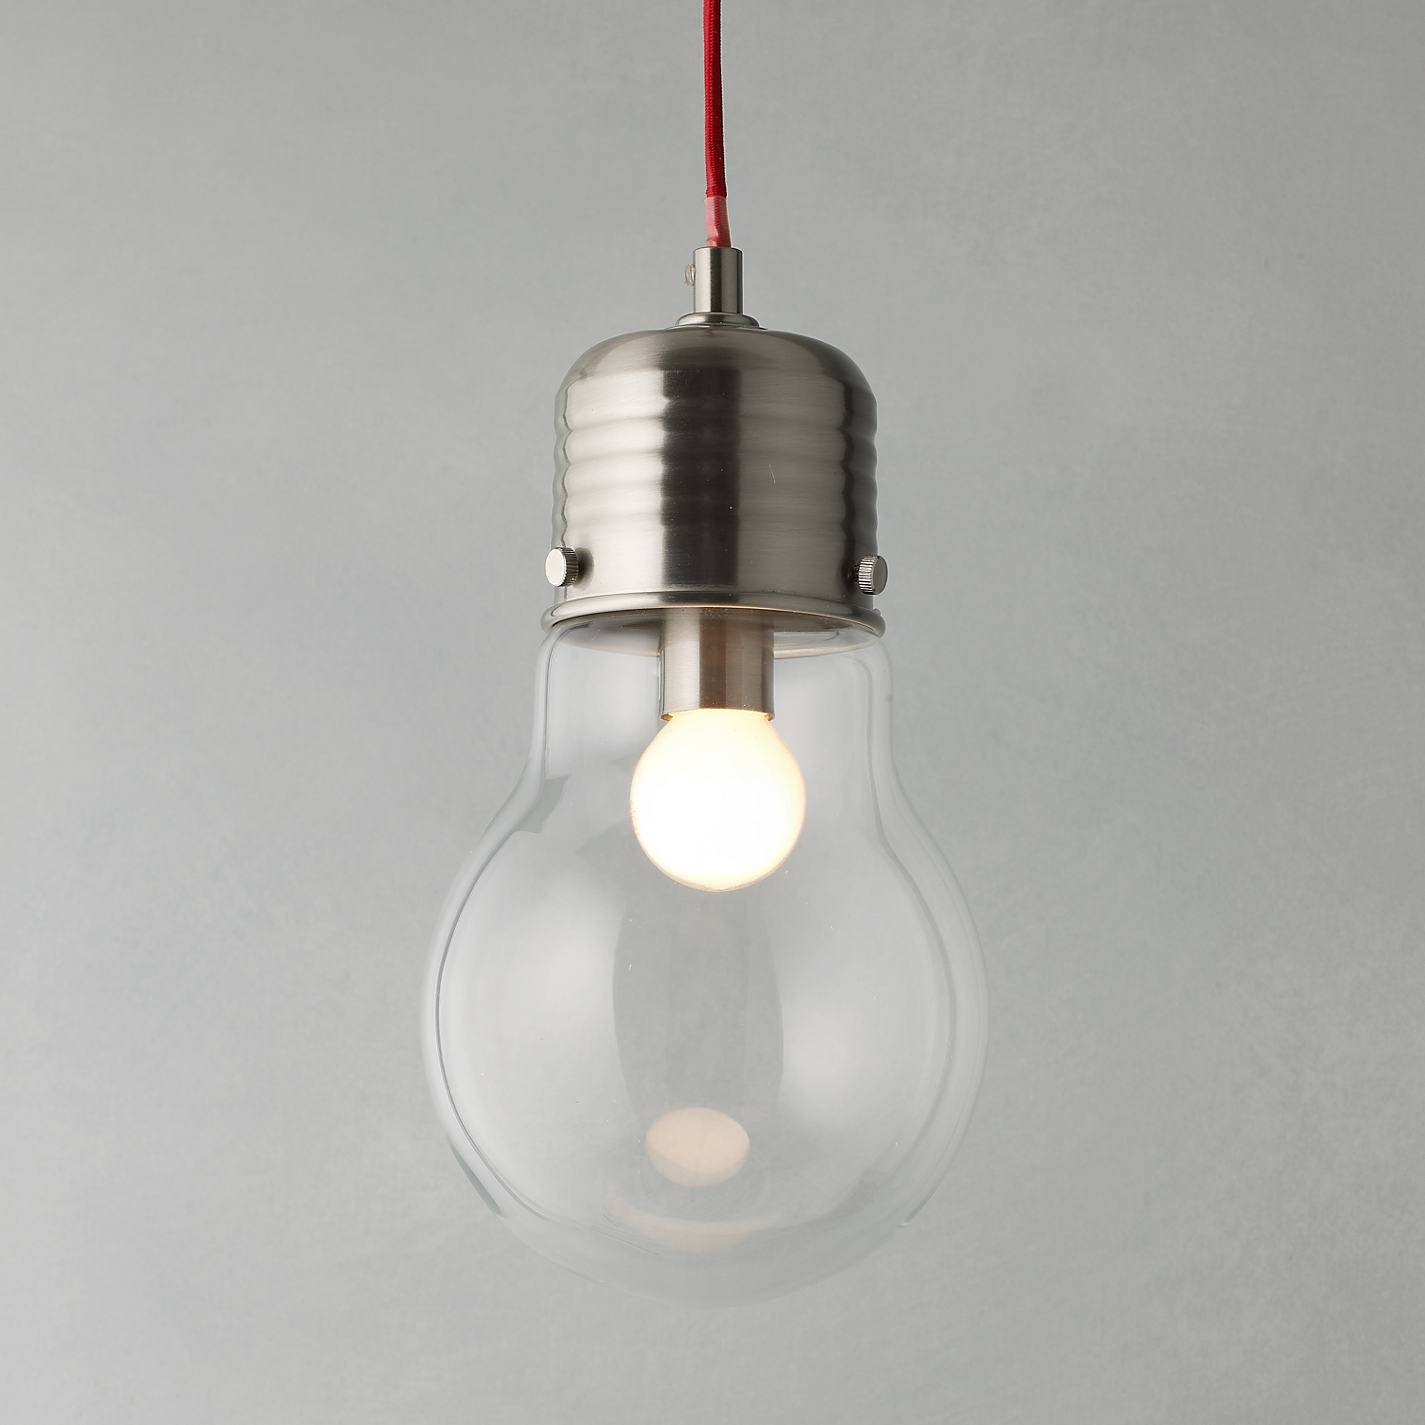 Light Bulb Pendant - Baby-Exit intended for John Lewis Lighting Pendants (Image 12 of 15)